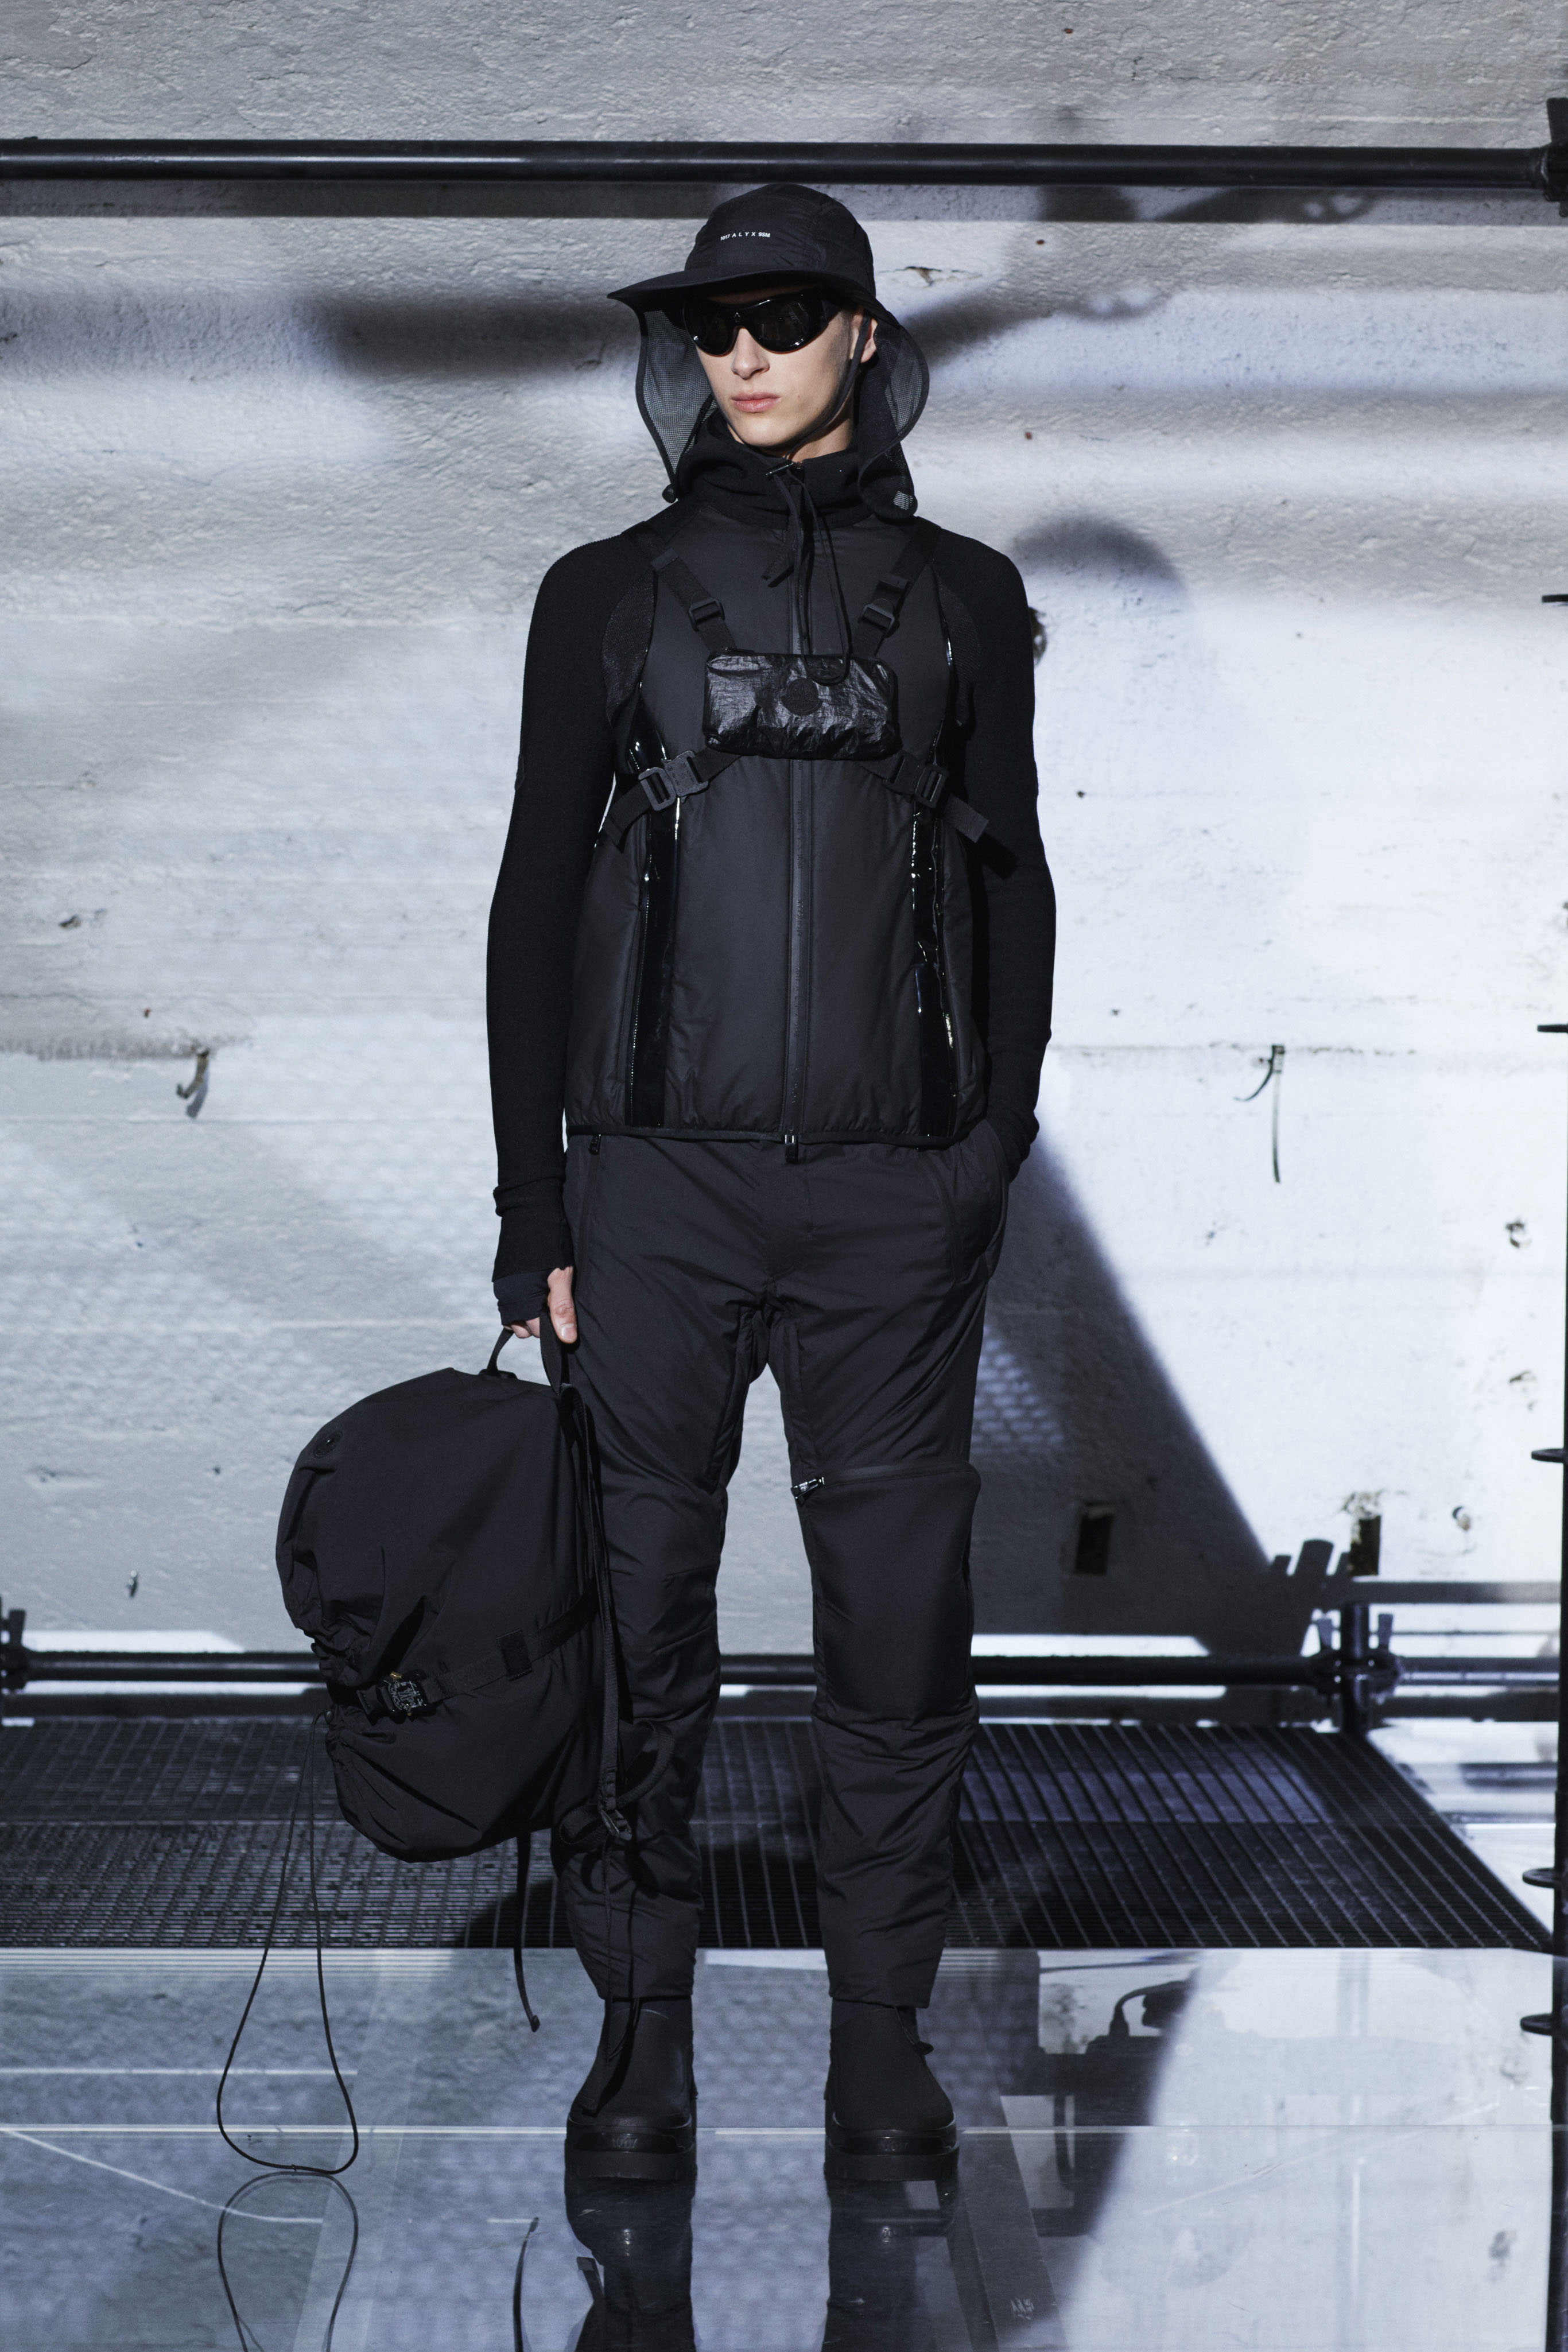 Complex Best Style Releases Moncler x 1017 ALYX 9SM